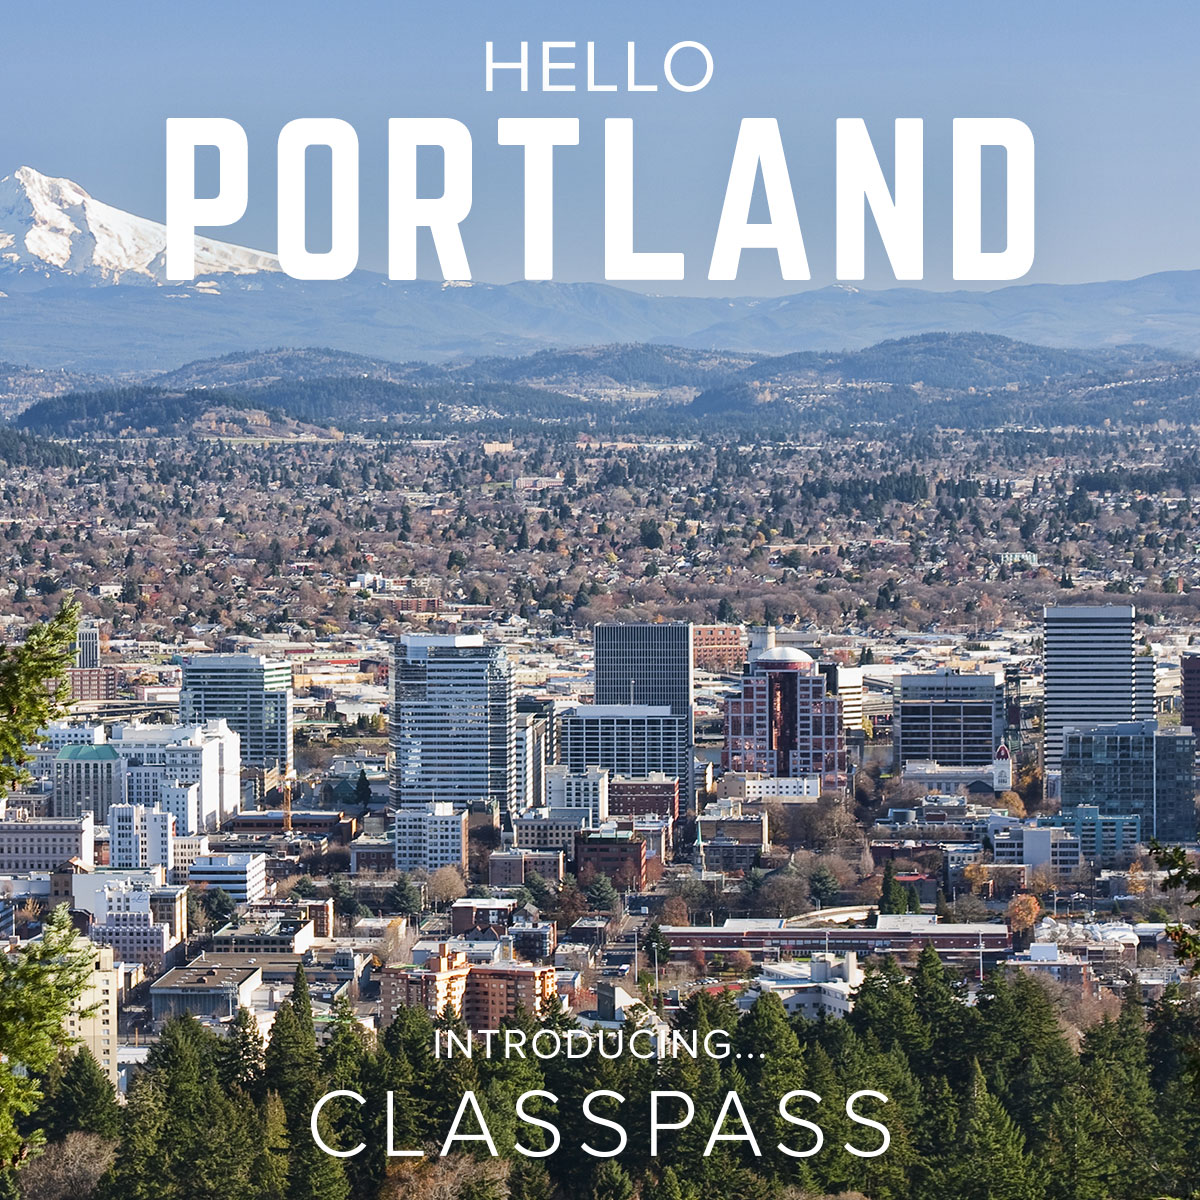 ClassPass has launched in Portland!